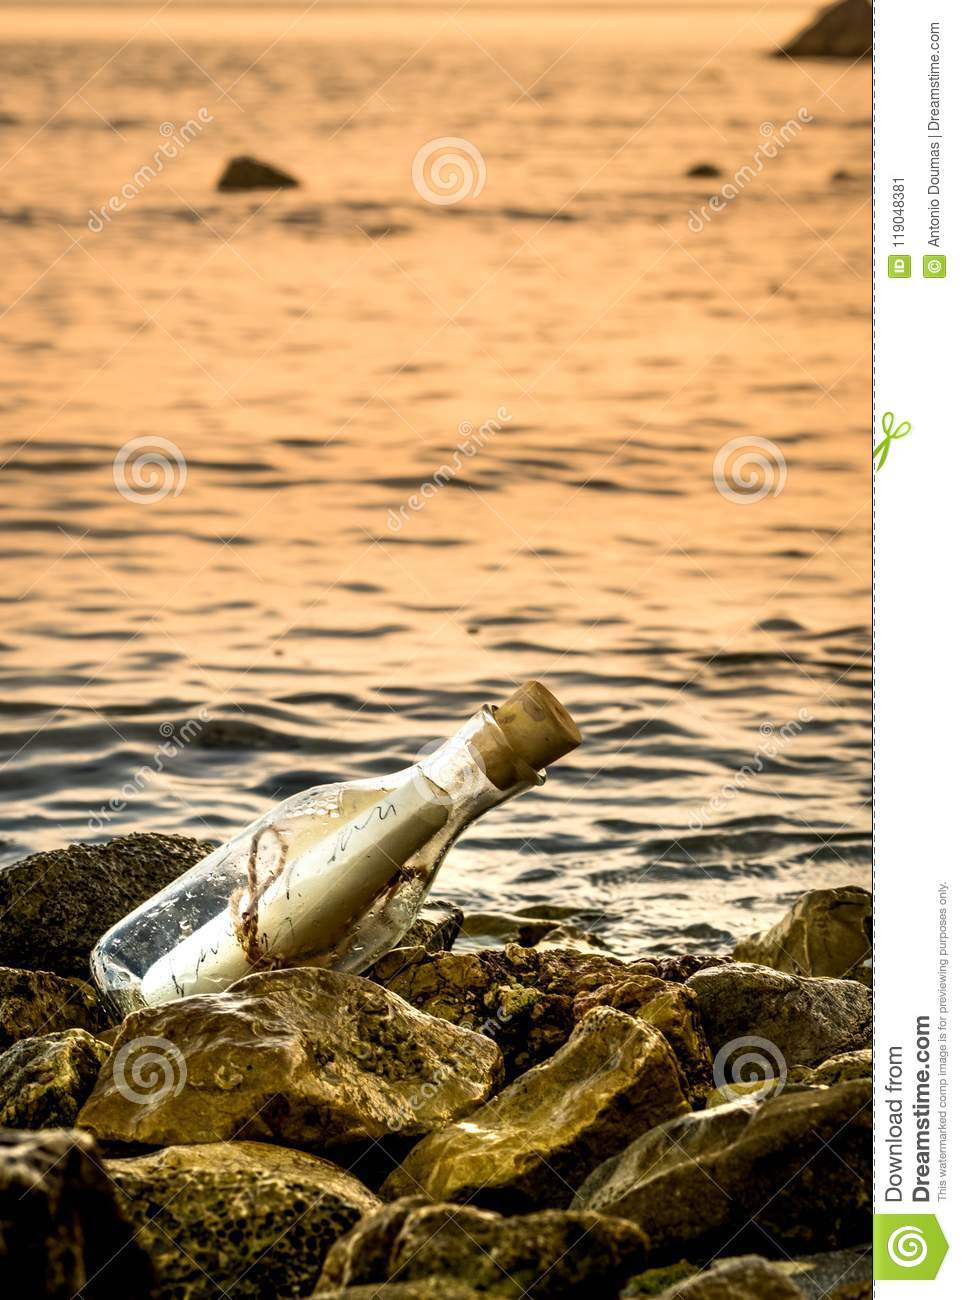 i found a message in a bottle love letter old letter in a bottle a letter from a bottle floating note discoverie message inside the bottle was a